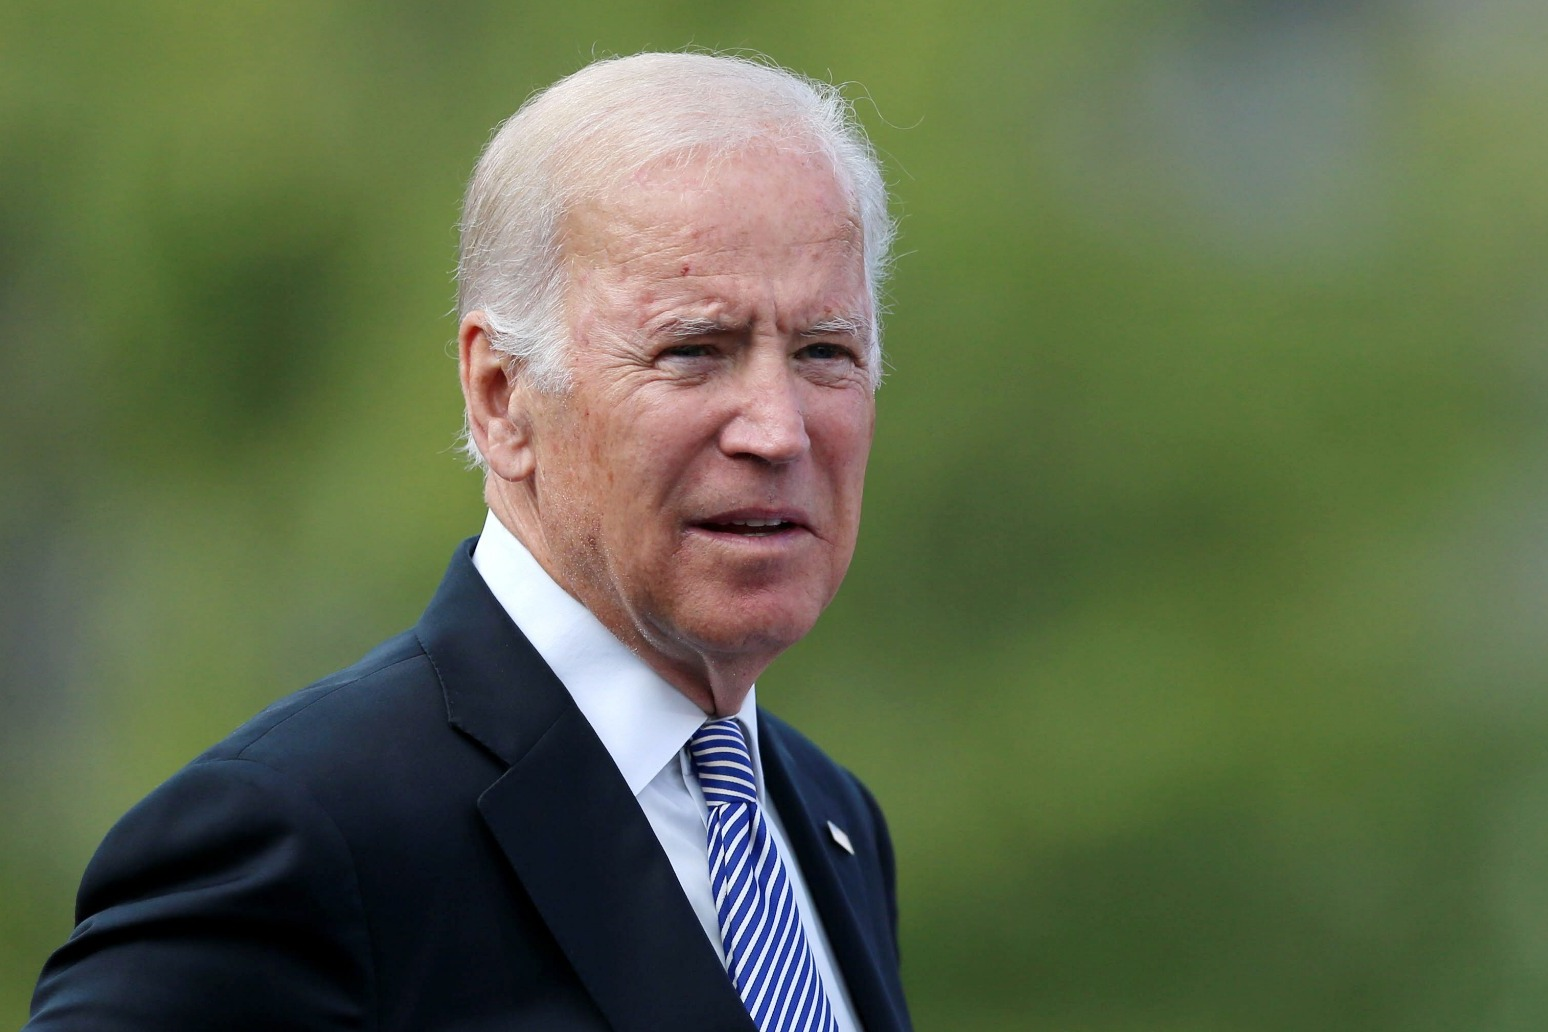 Joe Biden expresses sorrow after police officer killed in Capitol attack